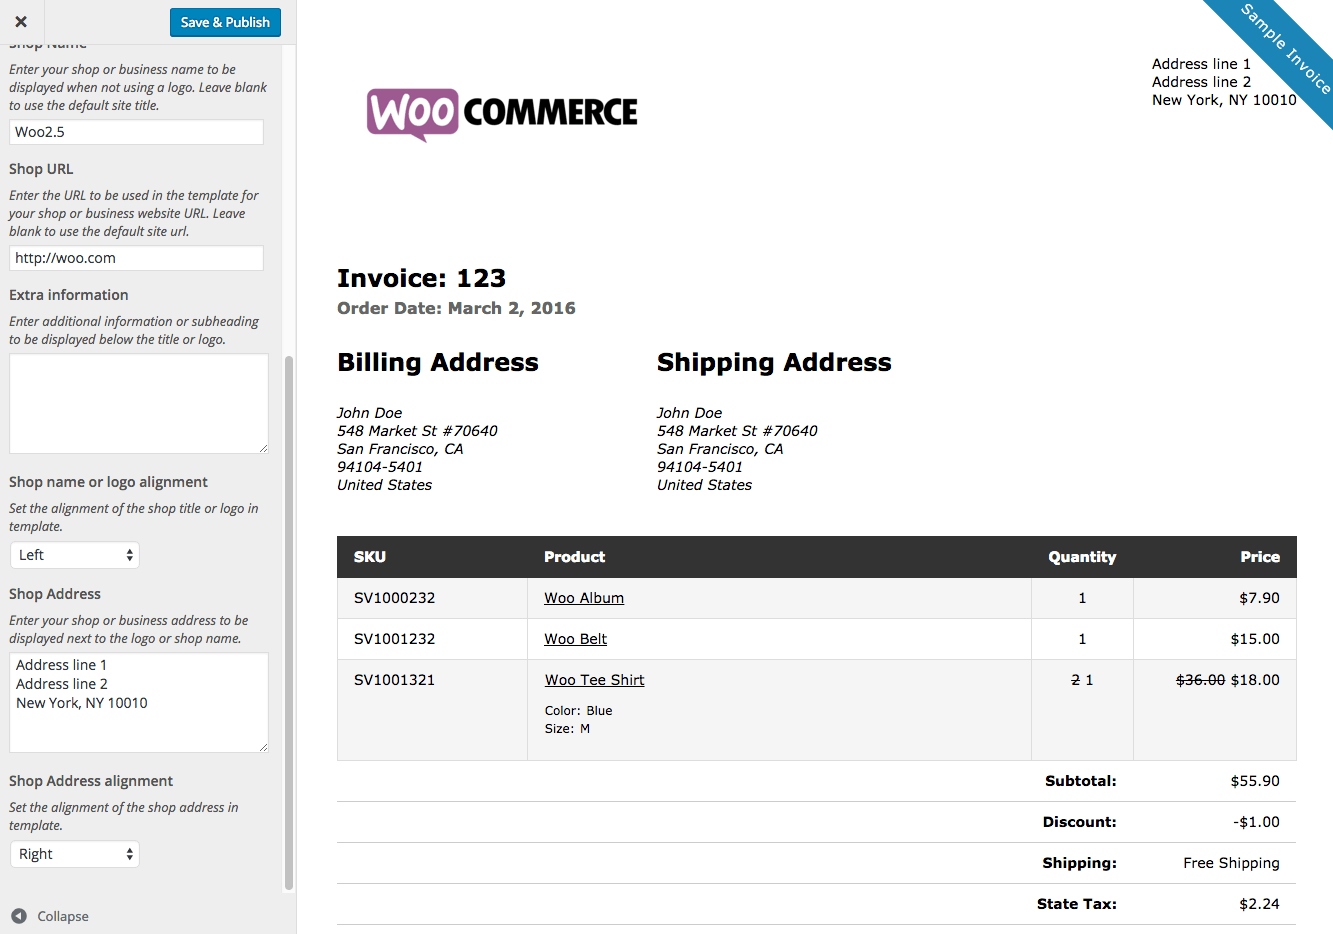 Roundshotus  Winning Print Invoices Amp Packing Lists  Woocommerce With Fascinating Woocommerce Print Invoices  Packing Lists Customizer With Breathtaking Ikea Return Policy Without Receipt Also Security Deposit Receipt In Addition Walmart Receipt Book And Airbnb Receipt As Well As Return Without Receipt Best Buy Additionally Text Read Receipt From Woocommercecom With Roundshotus  Fascinating Print Invoices Amp Packing Lists  Woocommerce With Breathtaking Woocommerce Print Invoices  Packing Lists Customizer And Winning Ikea Return Policy Without Receipt Also Security Deposit Receipt In Addition Walmart Receipt Book From Woocommercecom